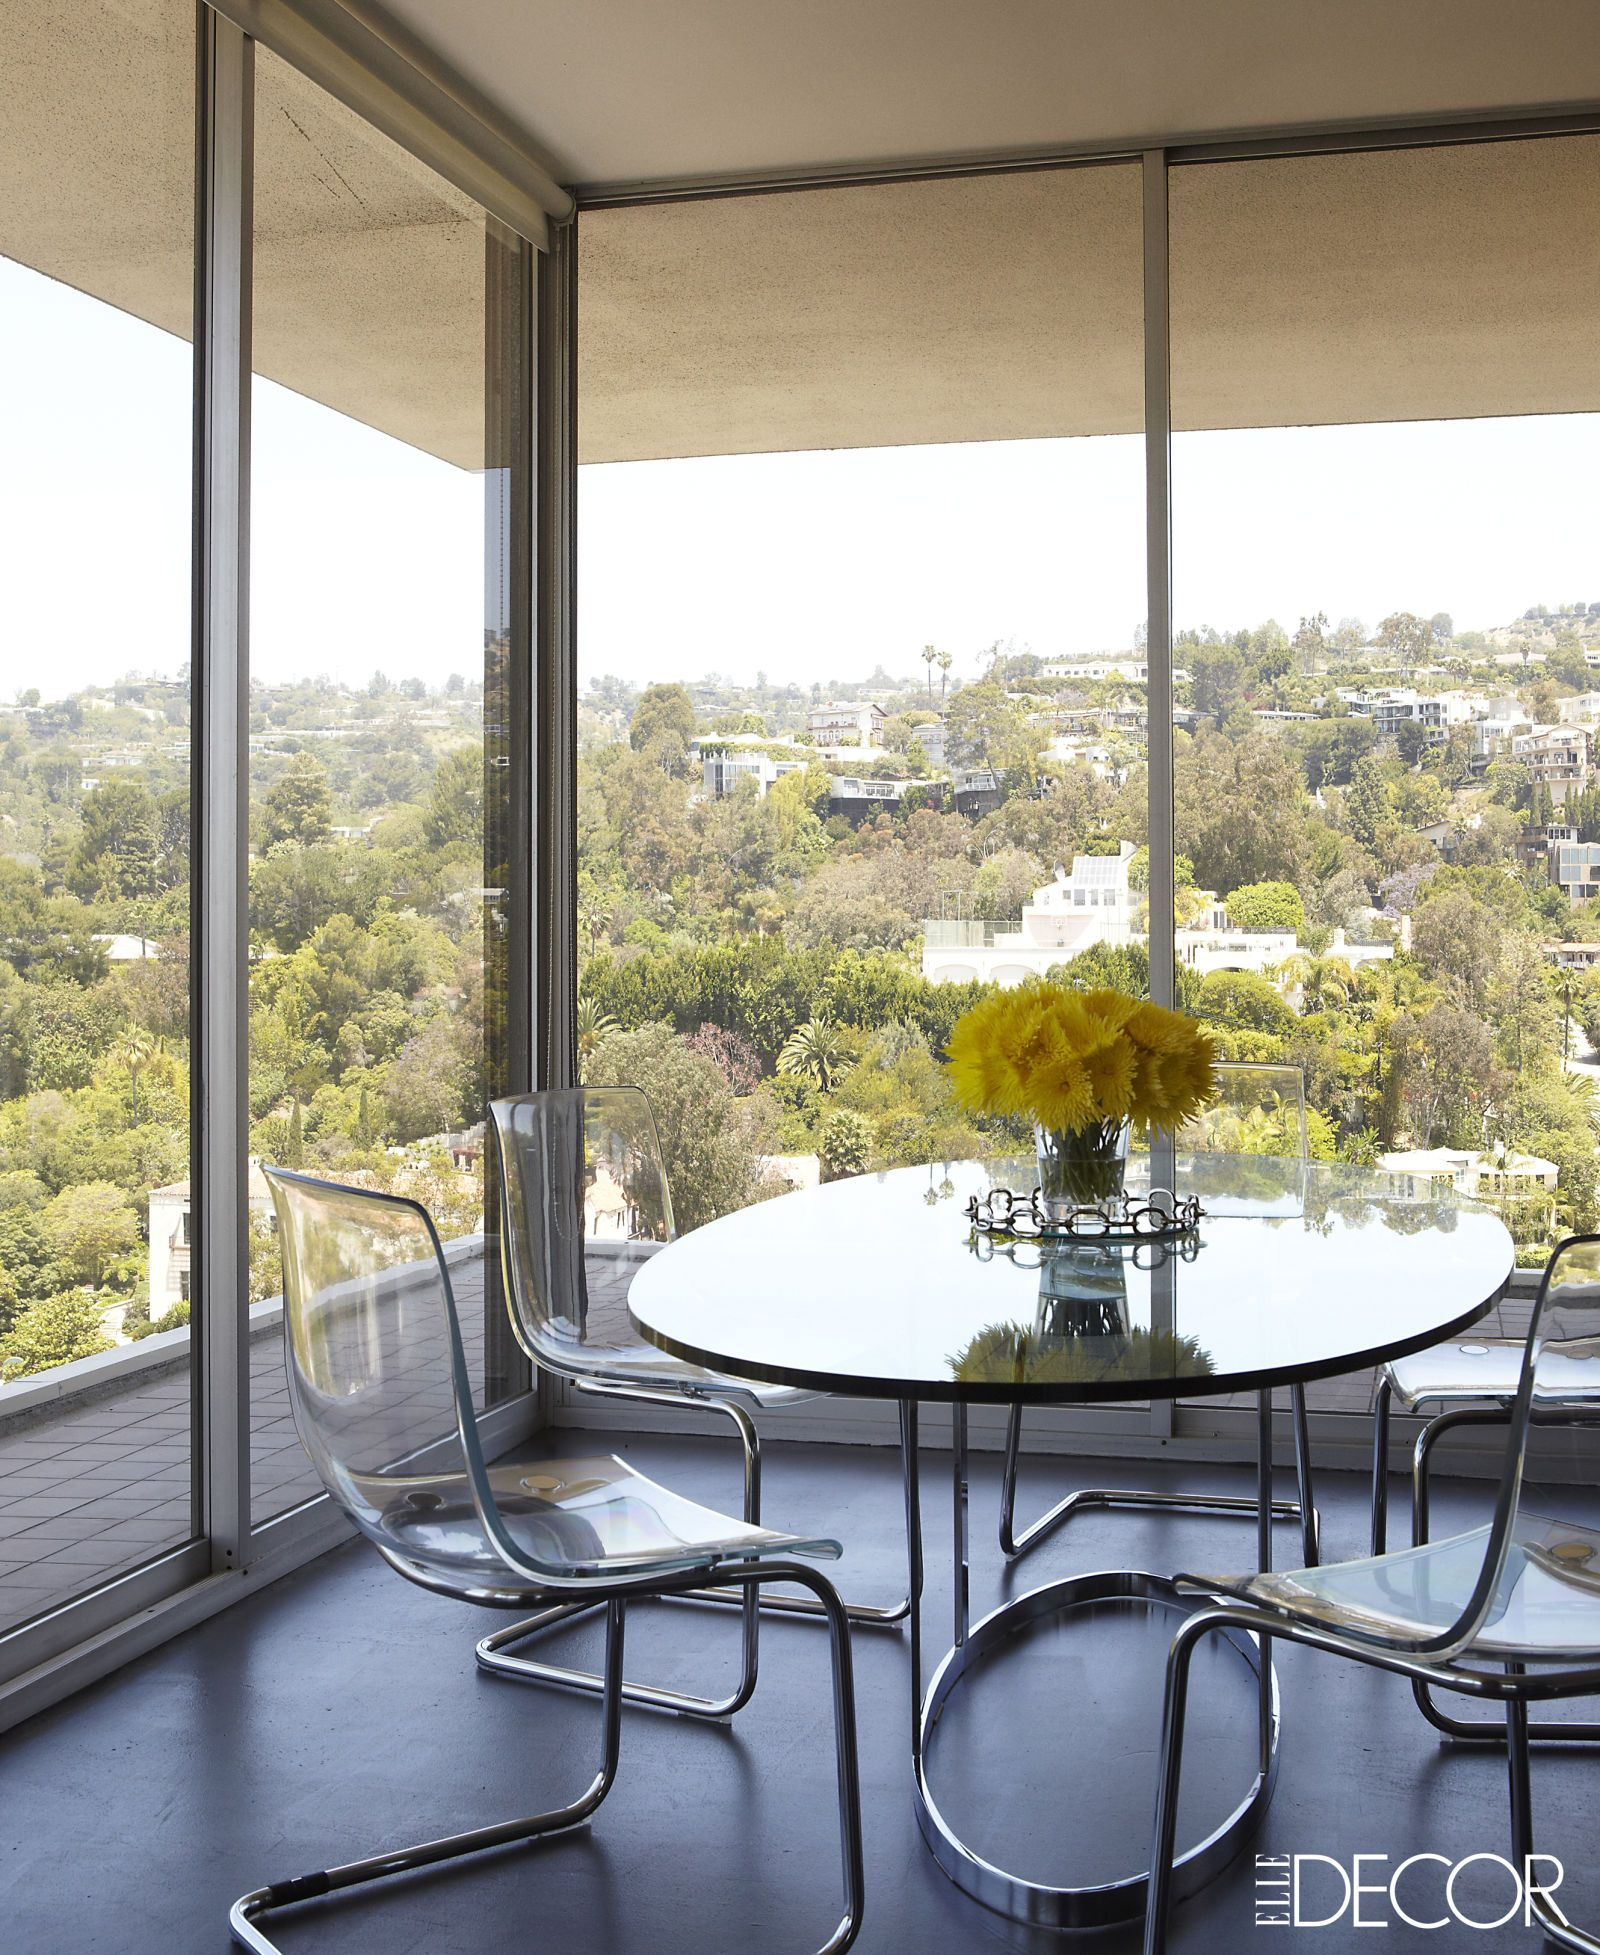 Dining Room Ideas Ikea: 20 Stunning Views We Want To Wake Up To Everyday